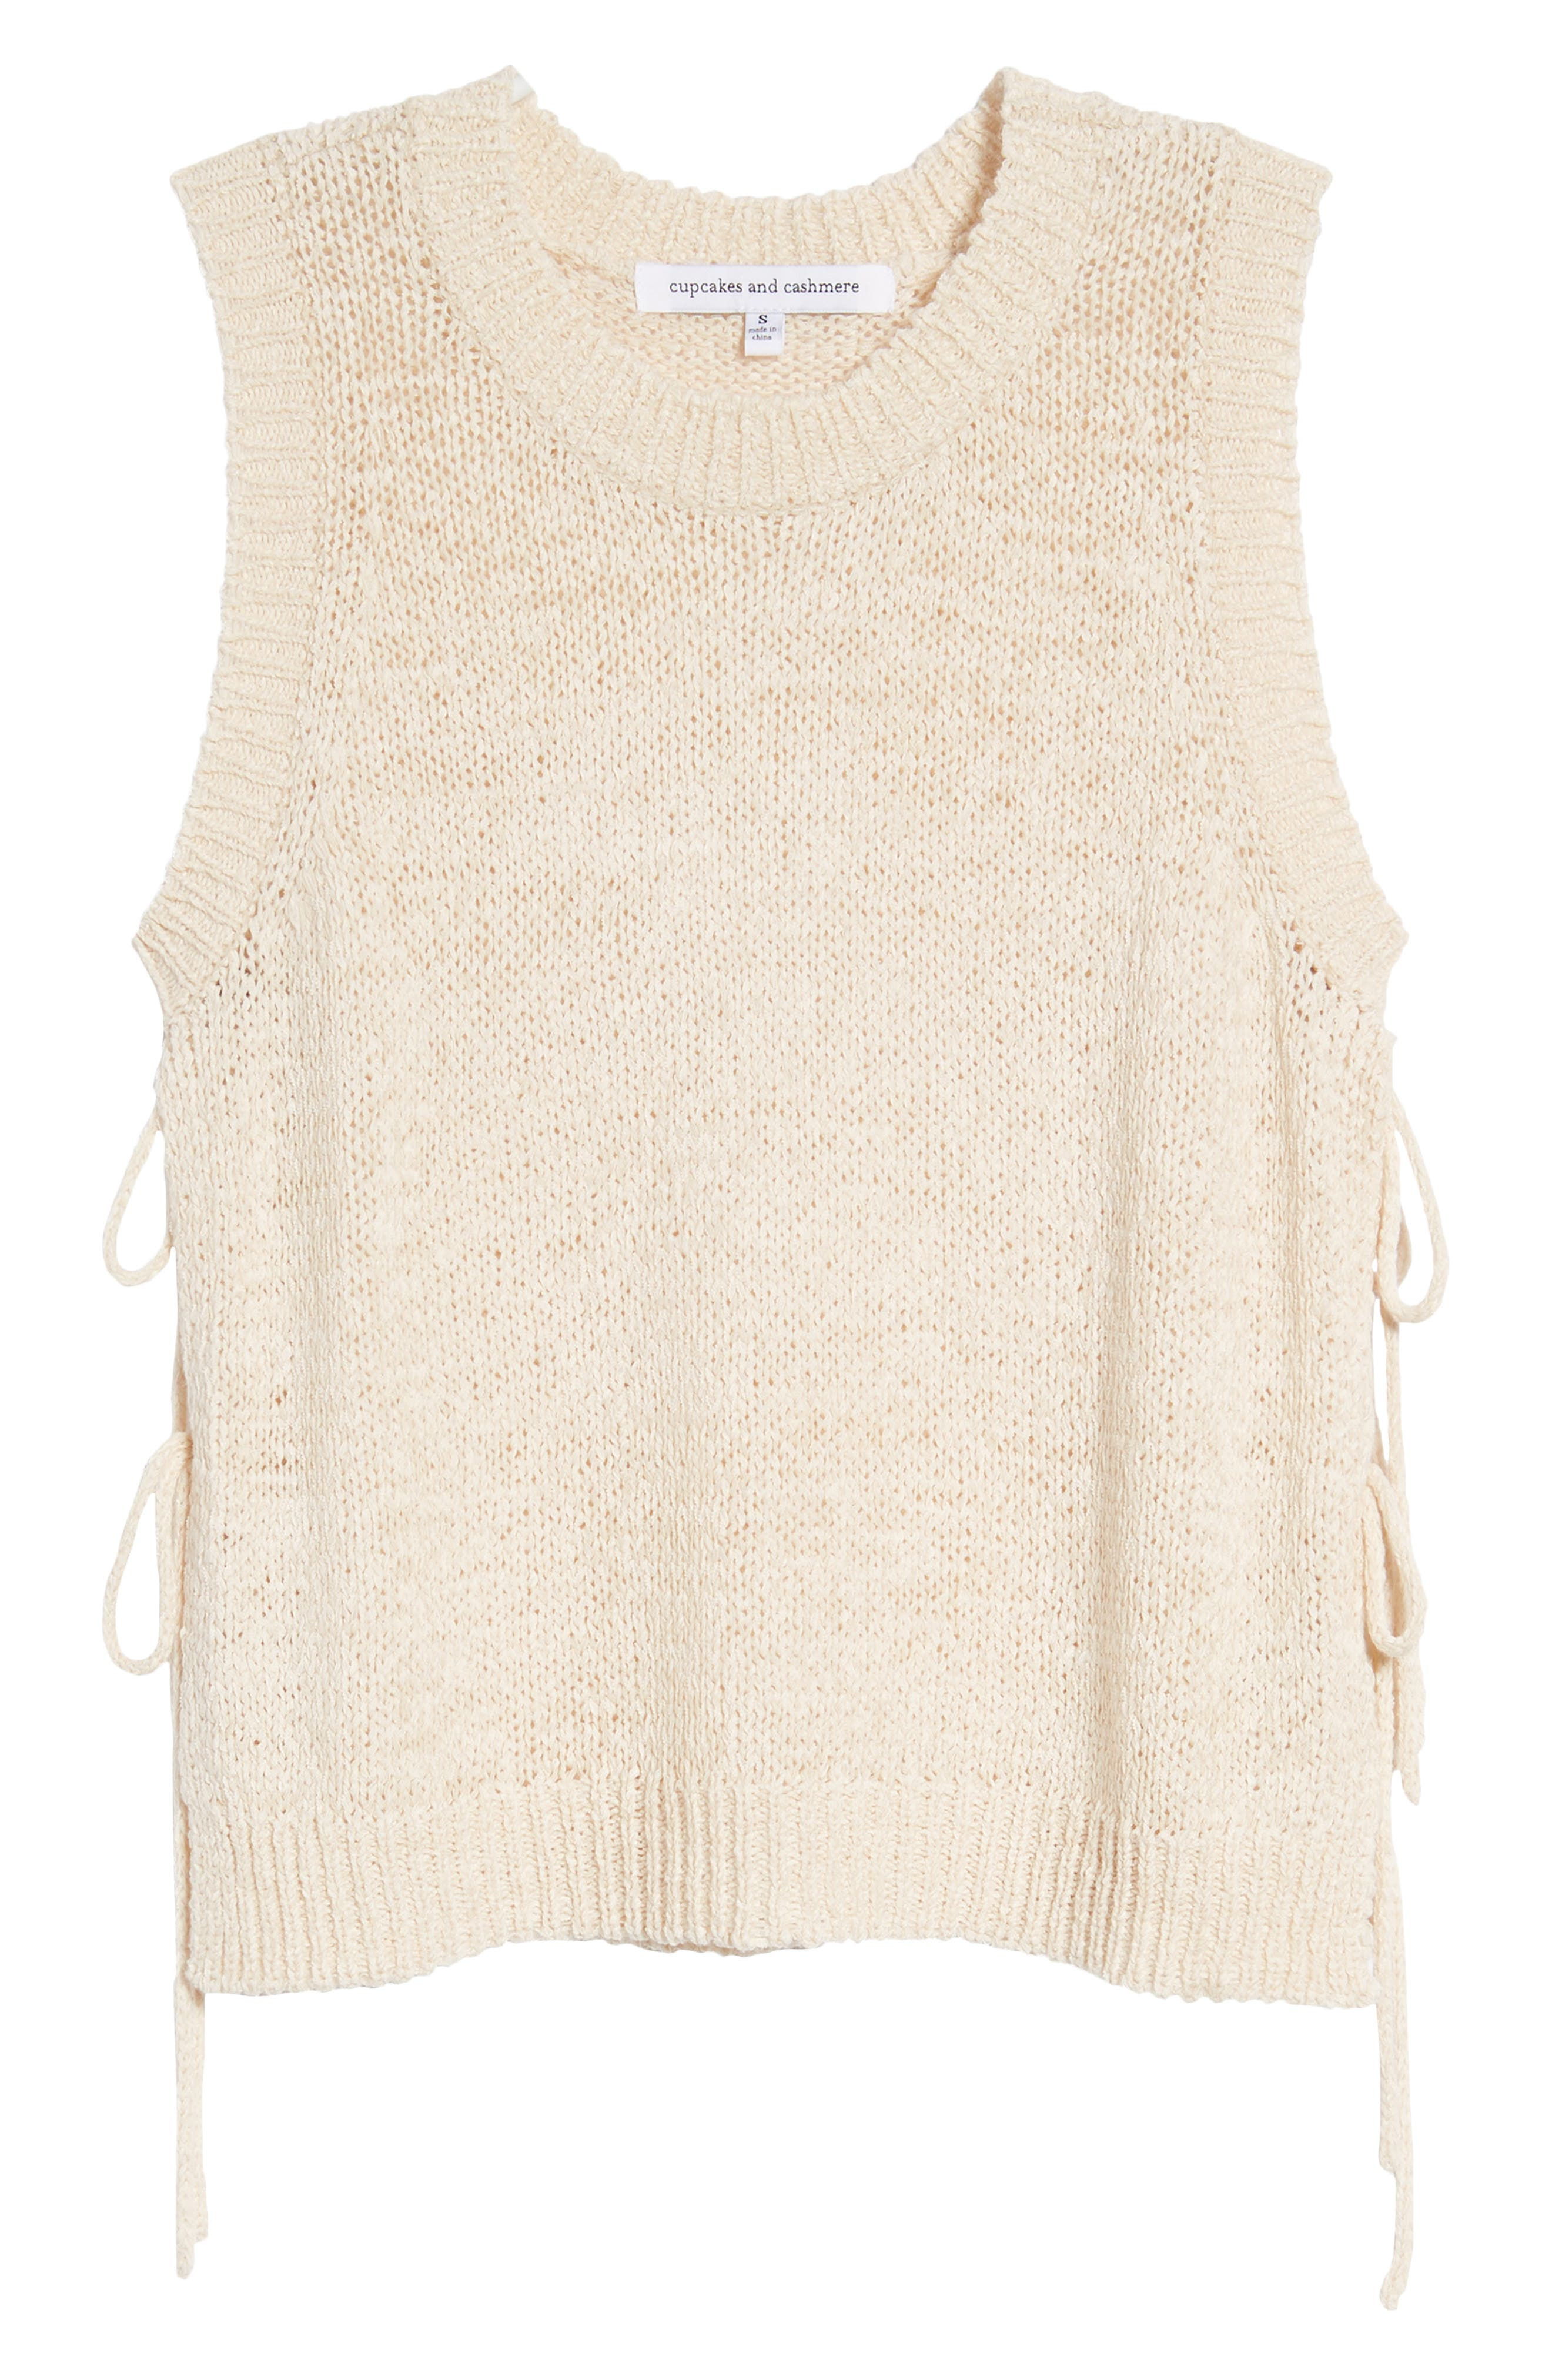 CUPCAKES AND CASHMERE,                             Chantell Sweater Tank,                             Alternate thumbnail 7, color,                             250